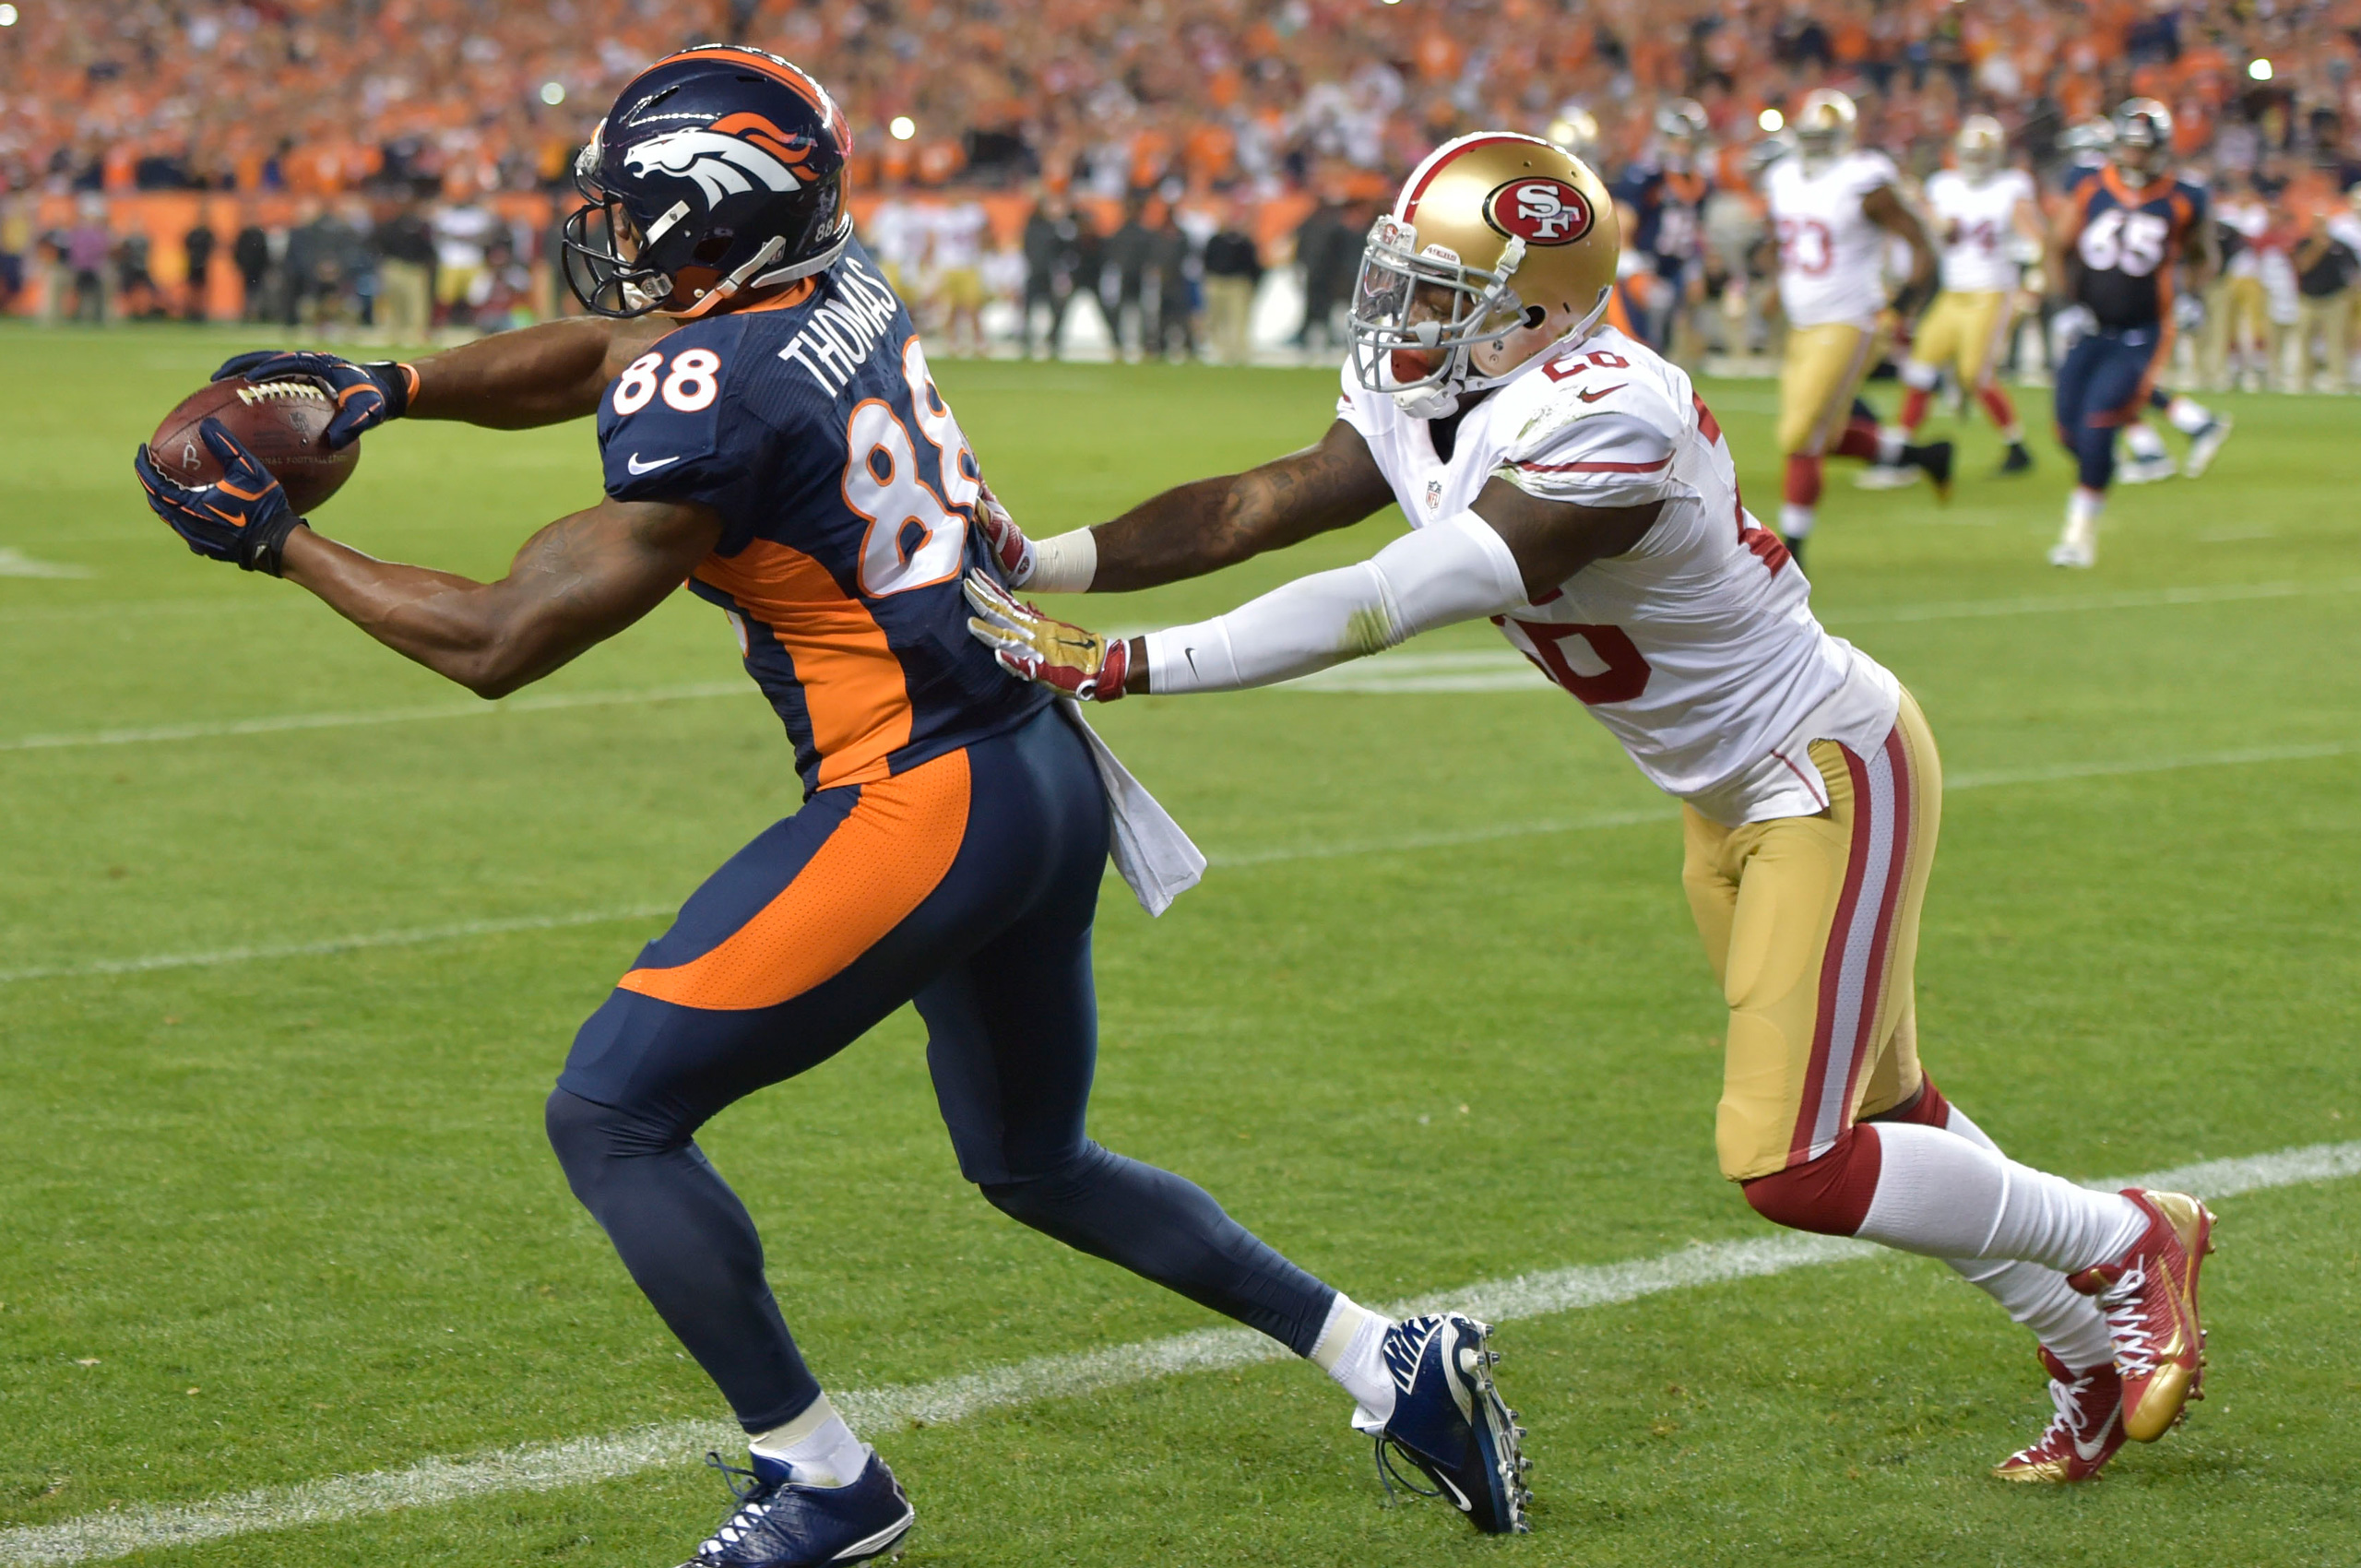 Demaryius Thomas catches quarterback Peyton Manning's 8-yard pass for Manning's 509th career touchdown passes during second-quarter action against the San Francisco 49ers at Sports Authority Field in Denver, Co. October 19, 2014. (Eric Lars Bakke)